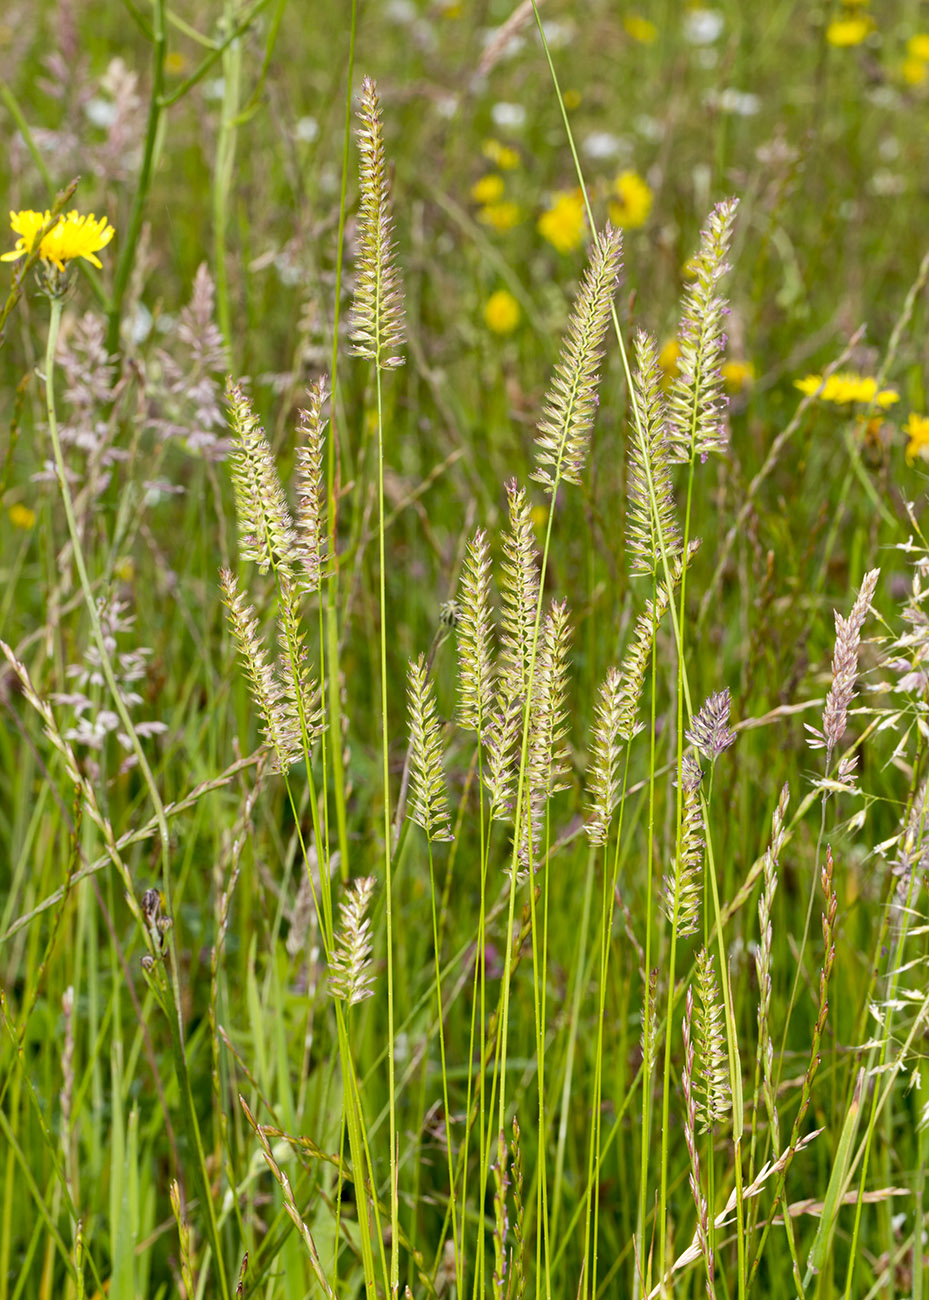 Meadow Foxtail, Alopecurus pratensis.  Orpington Field Club trip to Lullingstone Country Park, 14 June 2014.